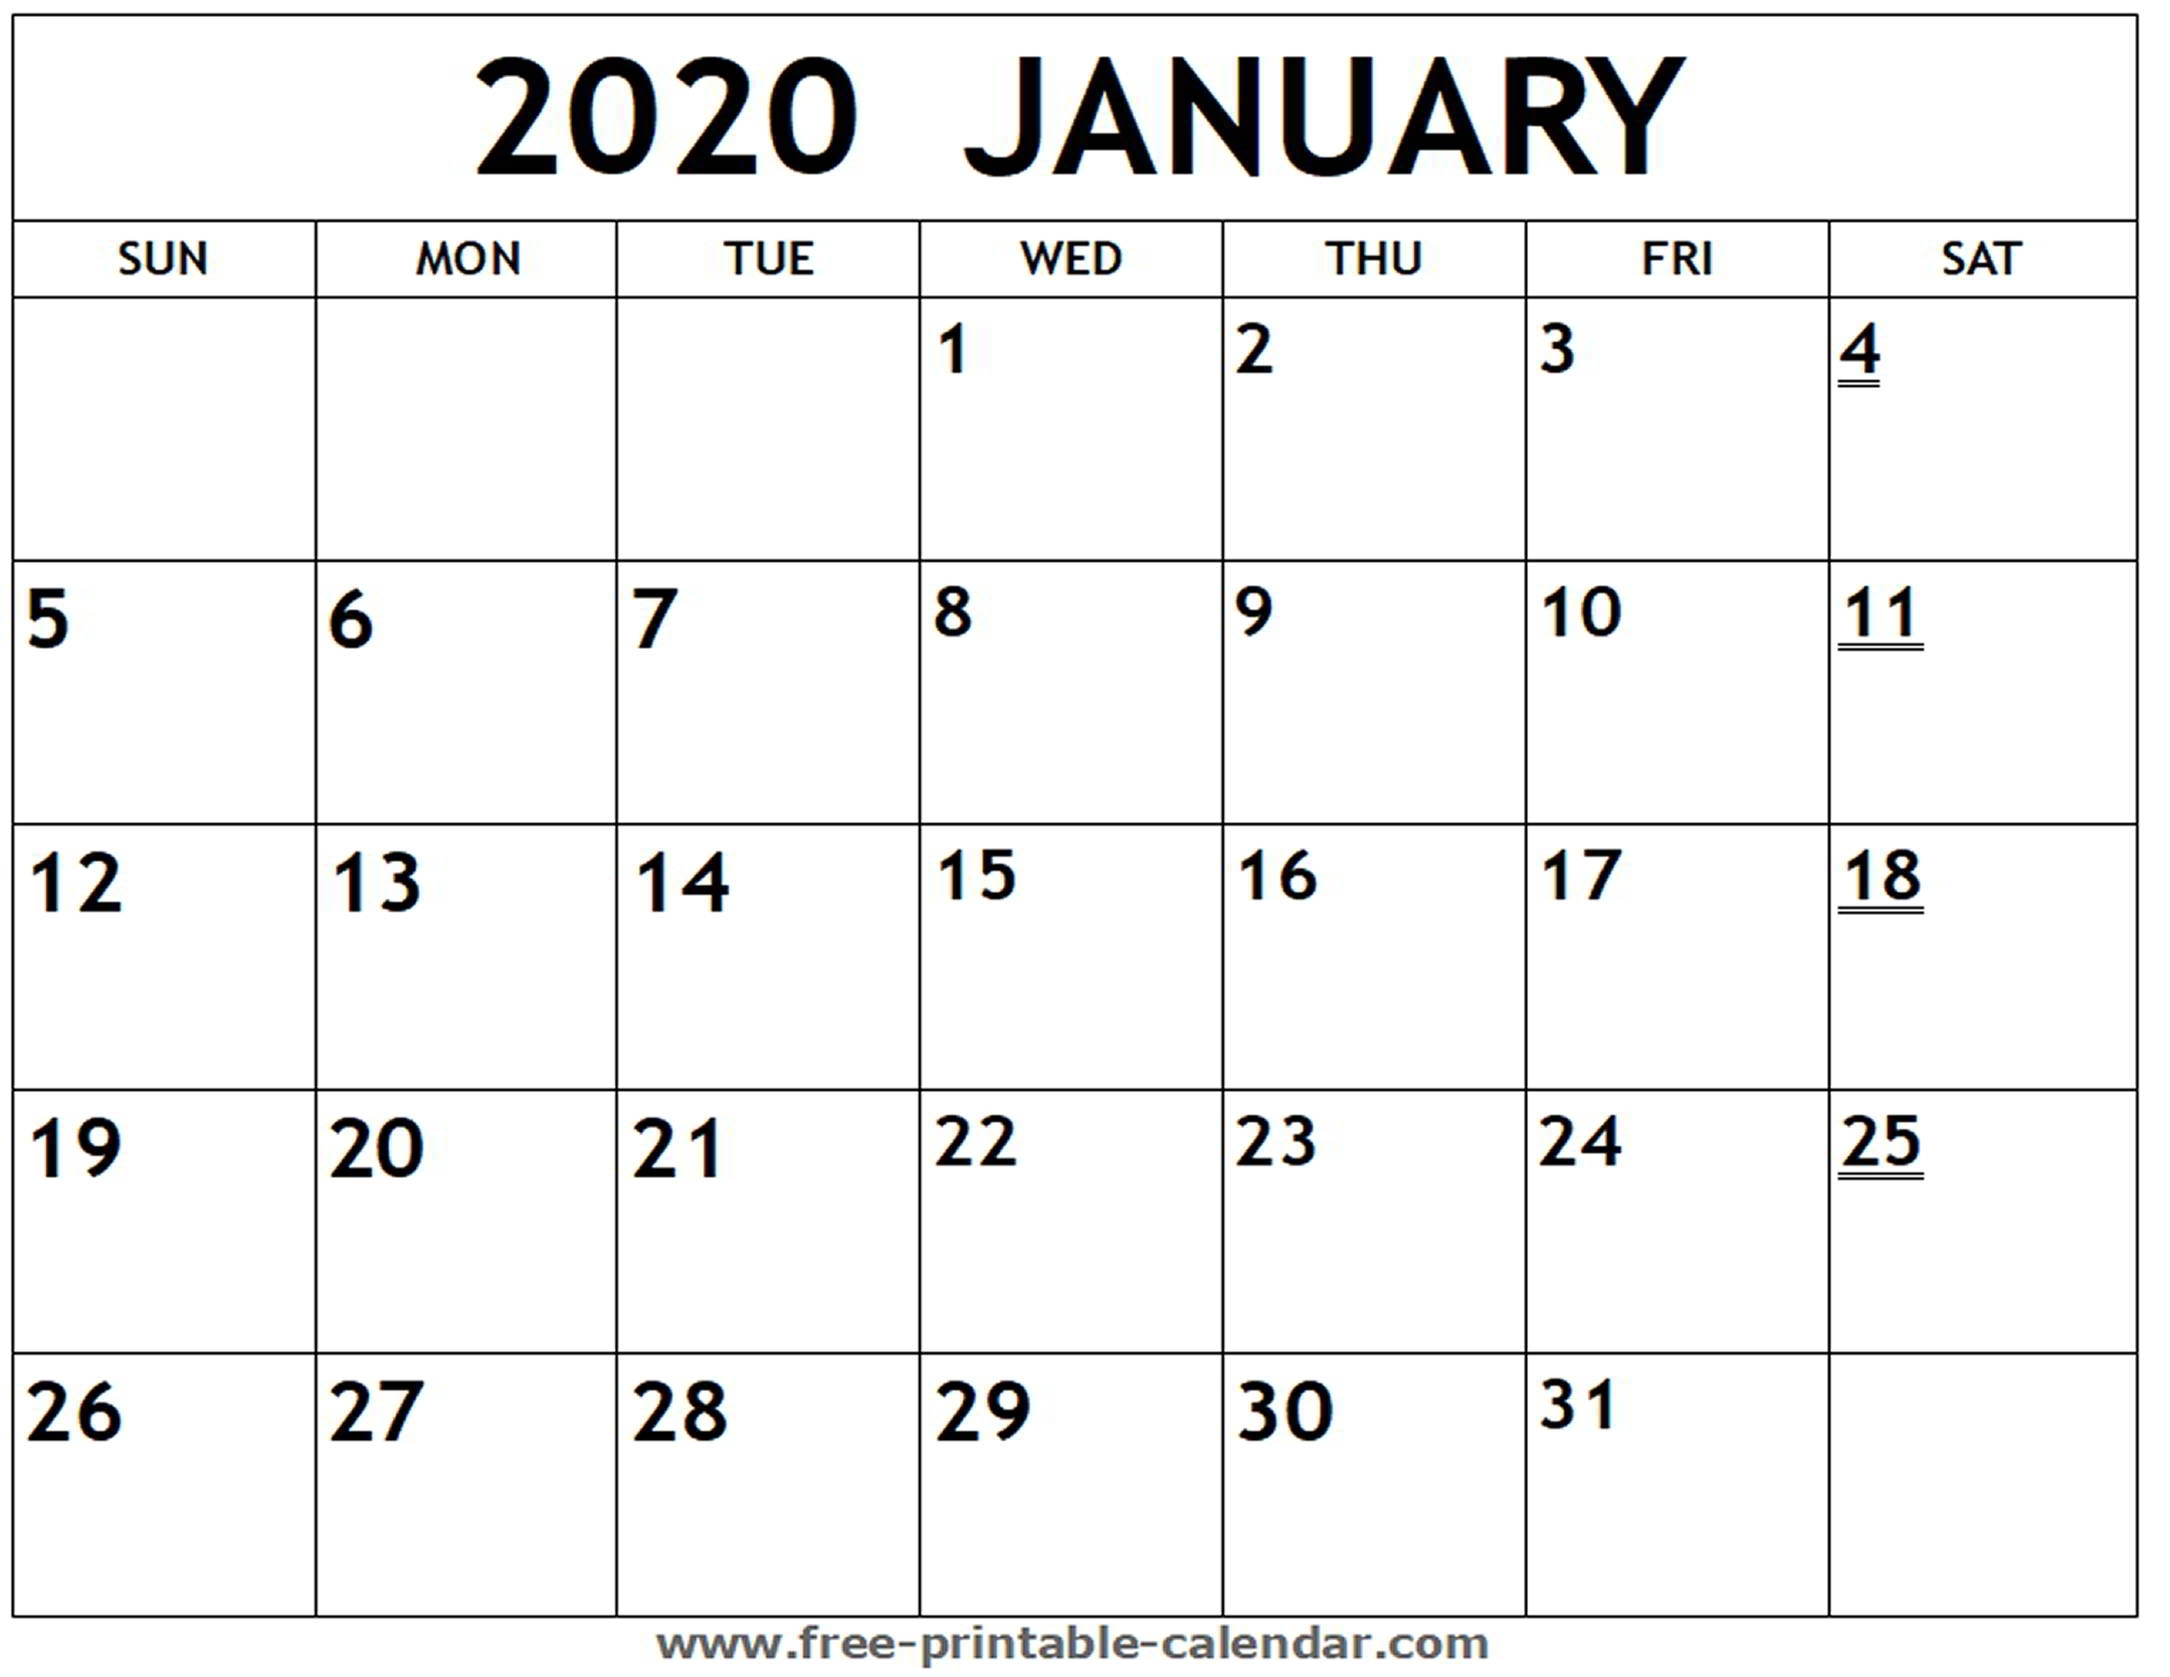 Printable 2020 January Calendar - Free-Printable-Calendar with regard to Free Printable Monthly Calendar For Year 2020